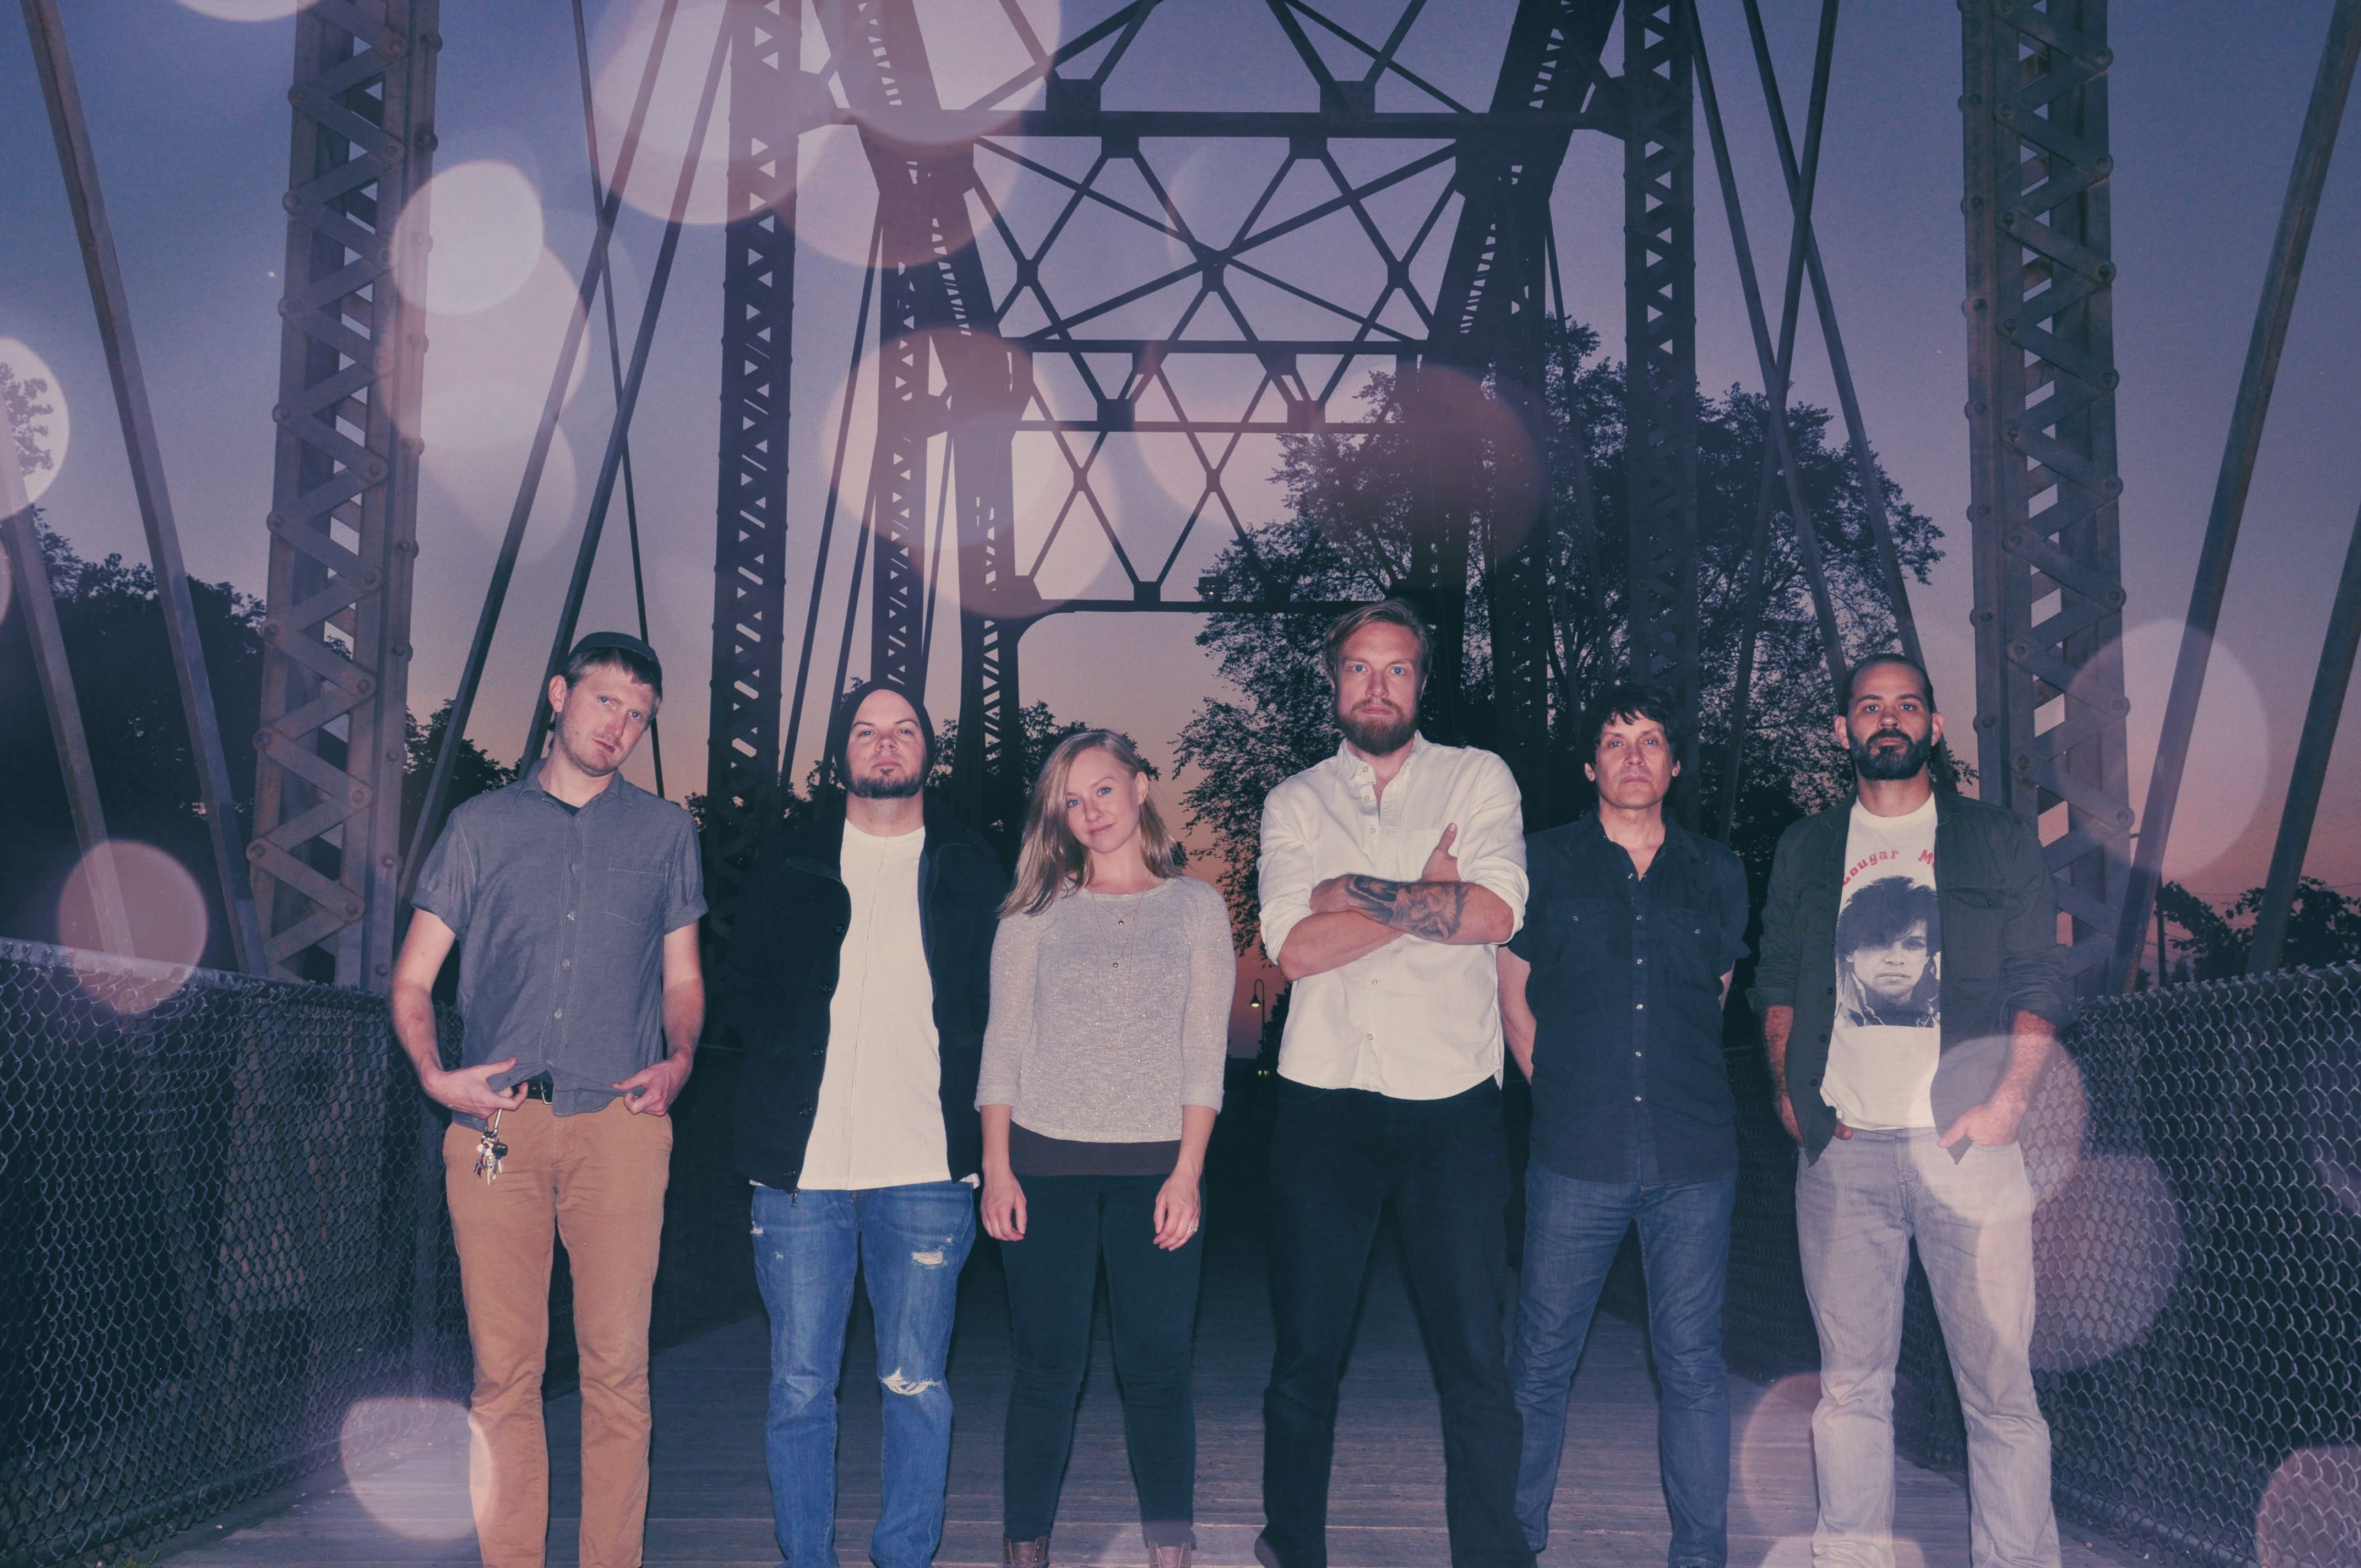 Communist Daughter stream forthcoming release 'Cracks That Built The Wall'.